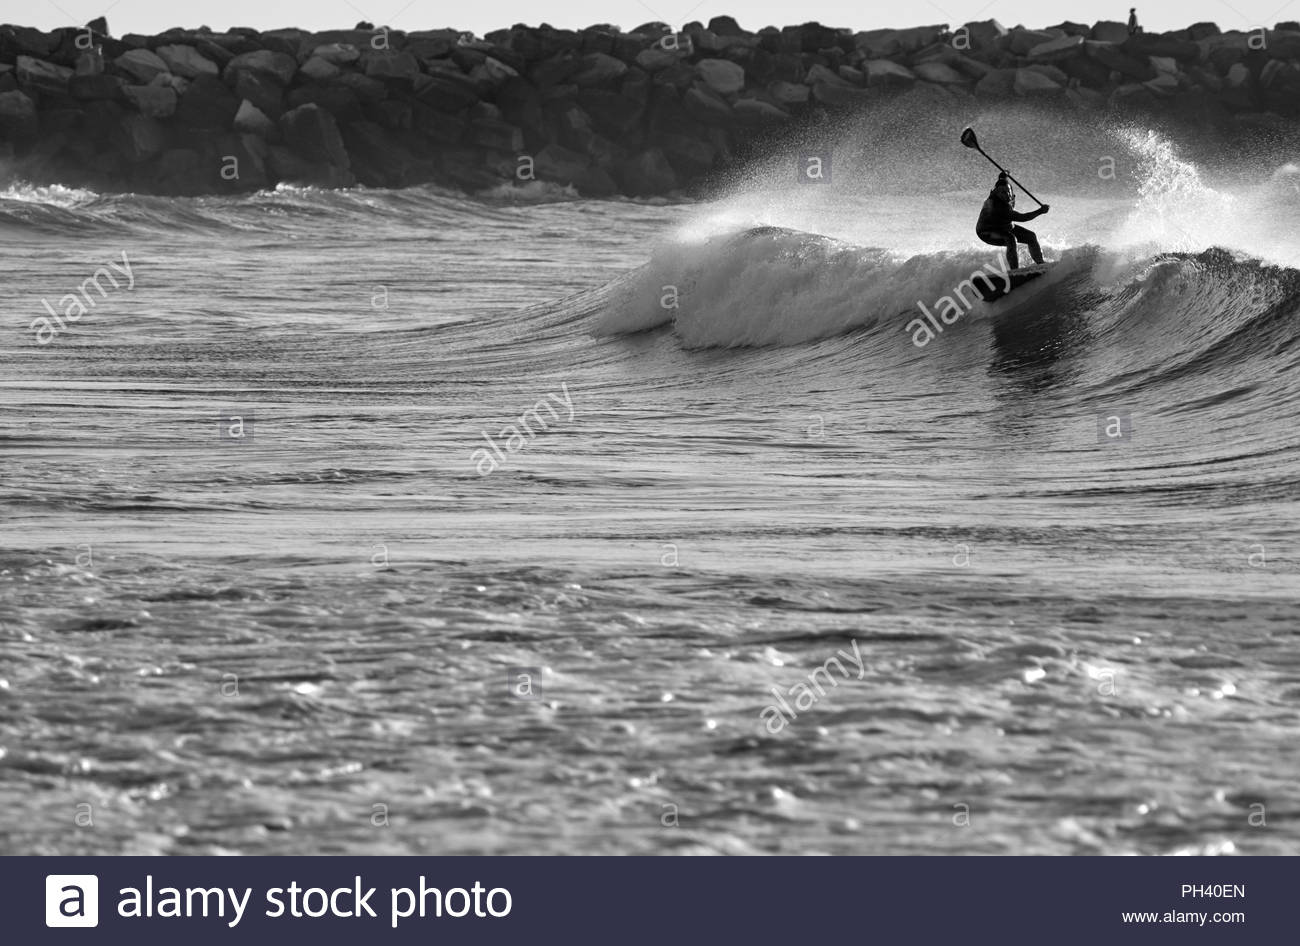 A black and white image capturing a male SUP rider surfing a moderate wave - backlit by the rising sun - at Turners Beach, Yamba, NSW, Australia. - Stock Image